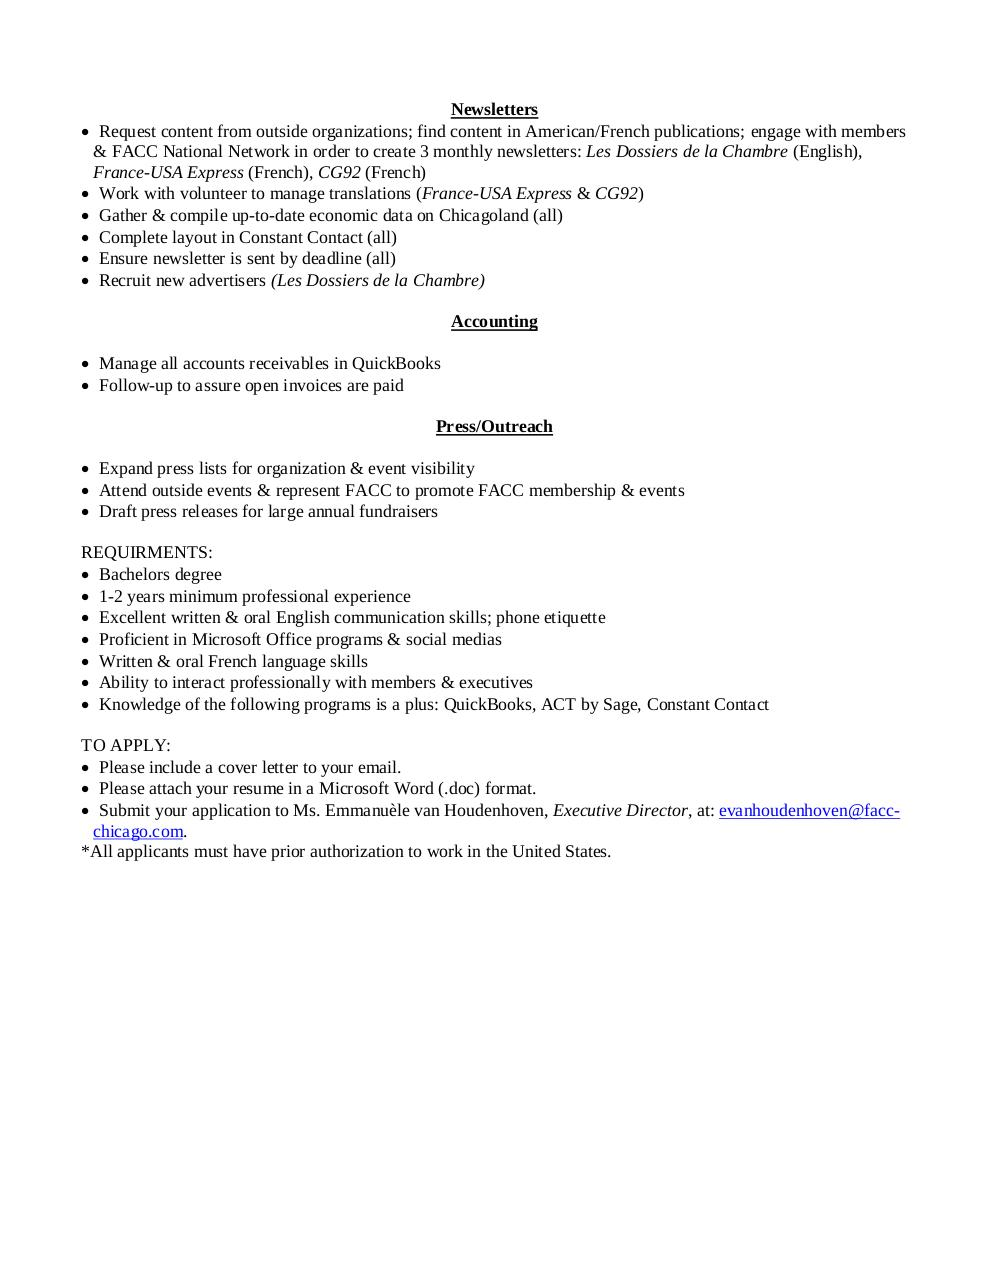 Job description office manager facc chicago job description office manager facc - It office manager job description ...